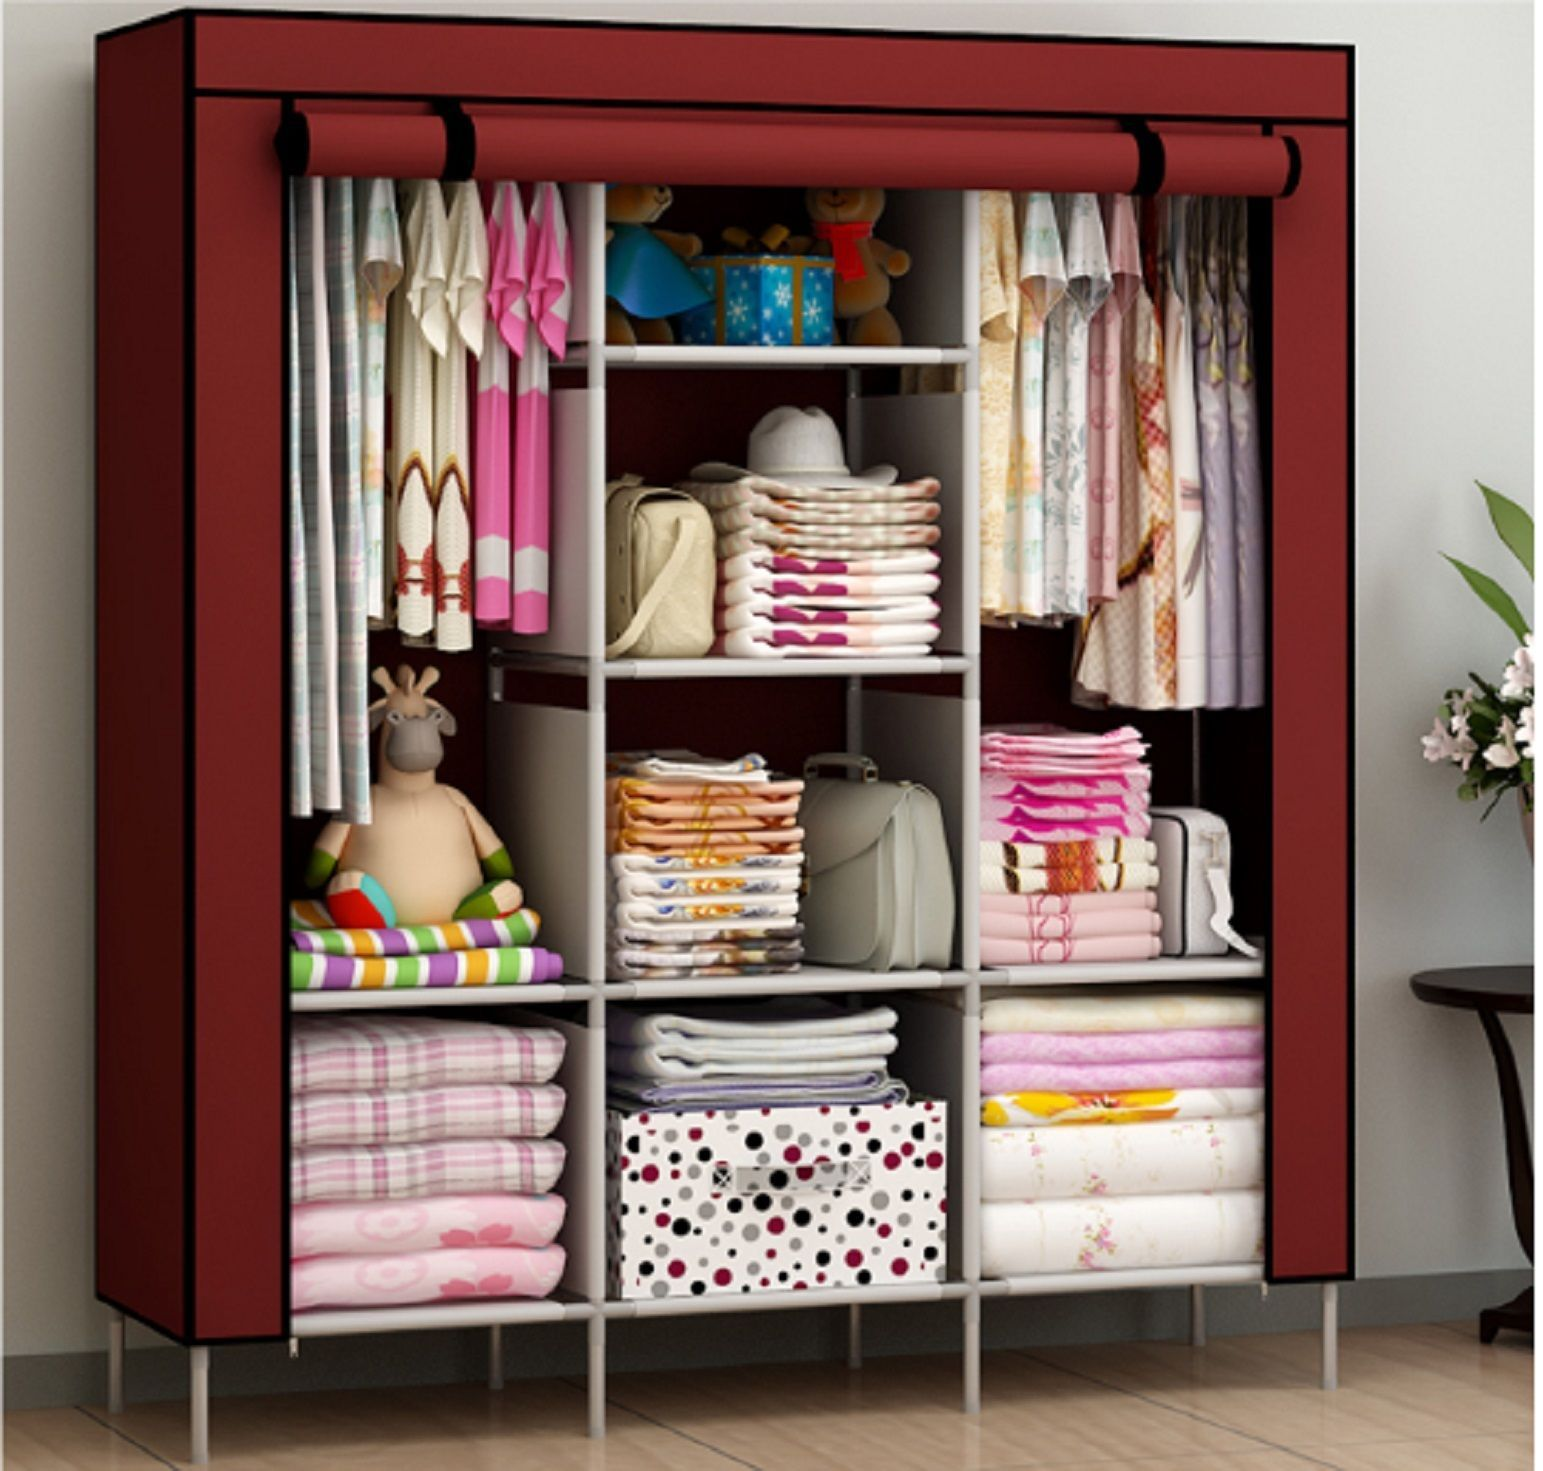 New Portable Bedroom Furniture Clothes Wardrobe Closet Storage Cabinet Armoires Storage